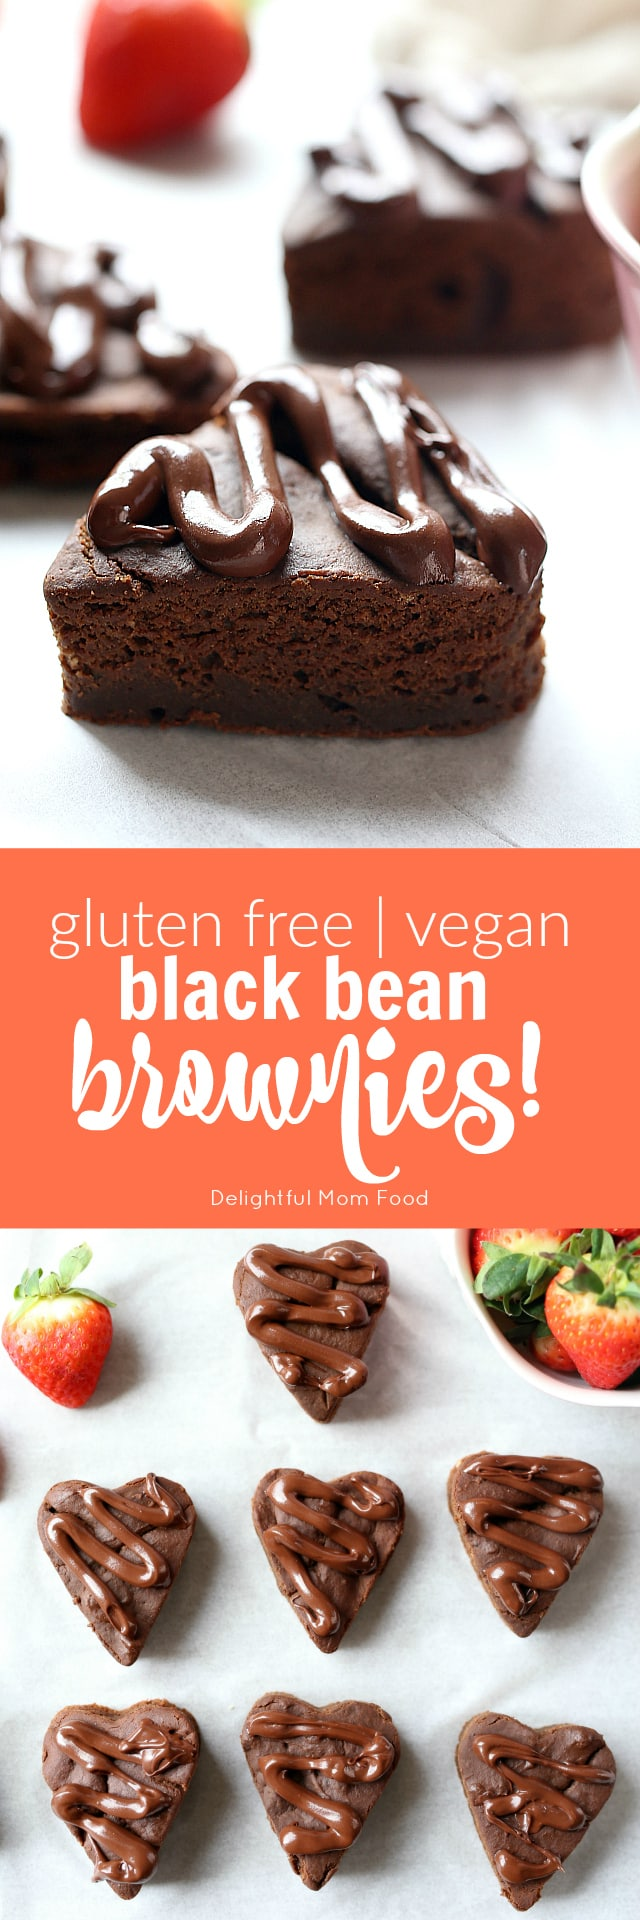 Fluffiest VEGAN black bean brownies! Perfect for Valentine's Day and they are gluten free!